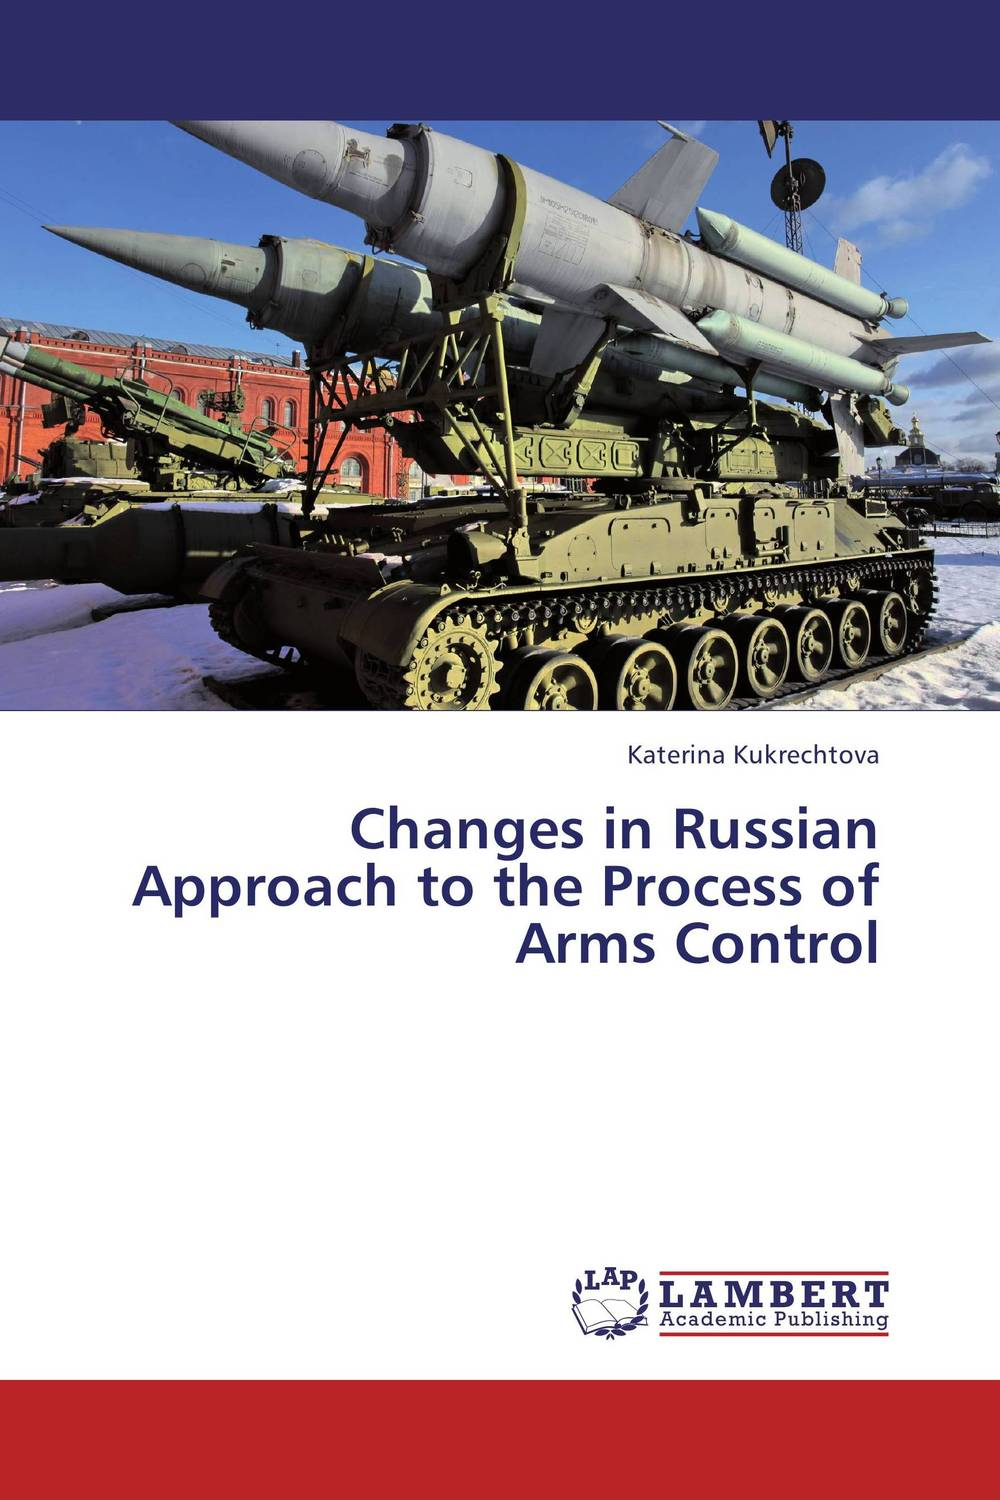 Changes in Russian Approach to the Process of Arms Control presidential nominee will address a gathering